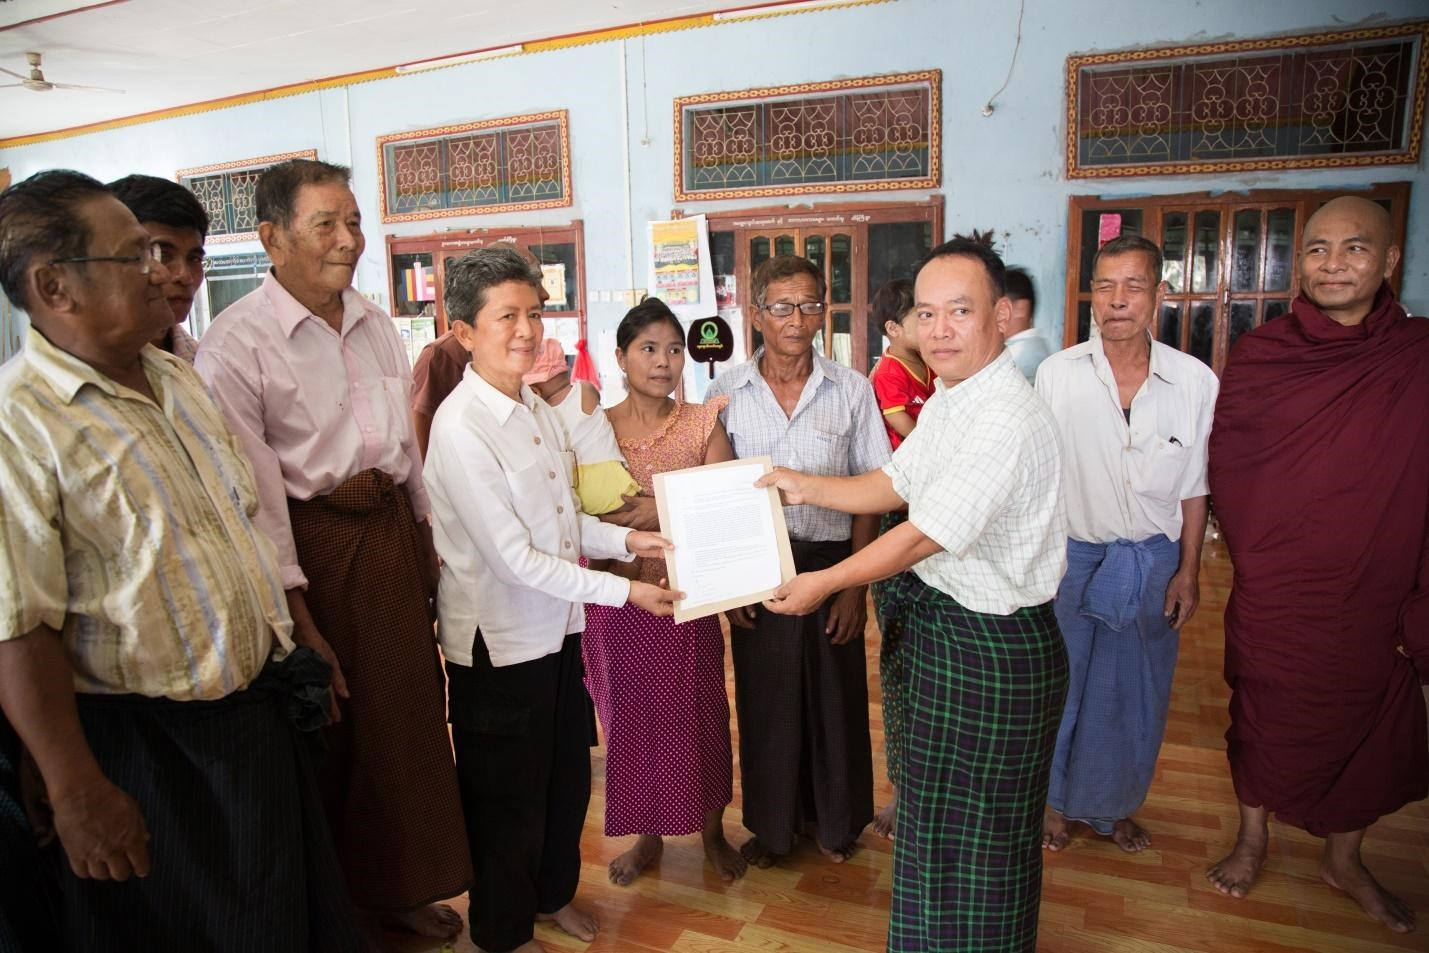 A representative of CSO groups and villagers submitted a petition to Ms. Tuenjai Deetes (middle), Commissioner of the National Human Rights Commission of Thailand on 25 February 2017 at Maying Gyi village